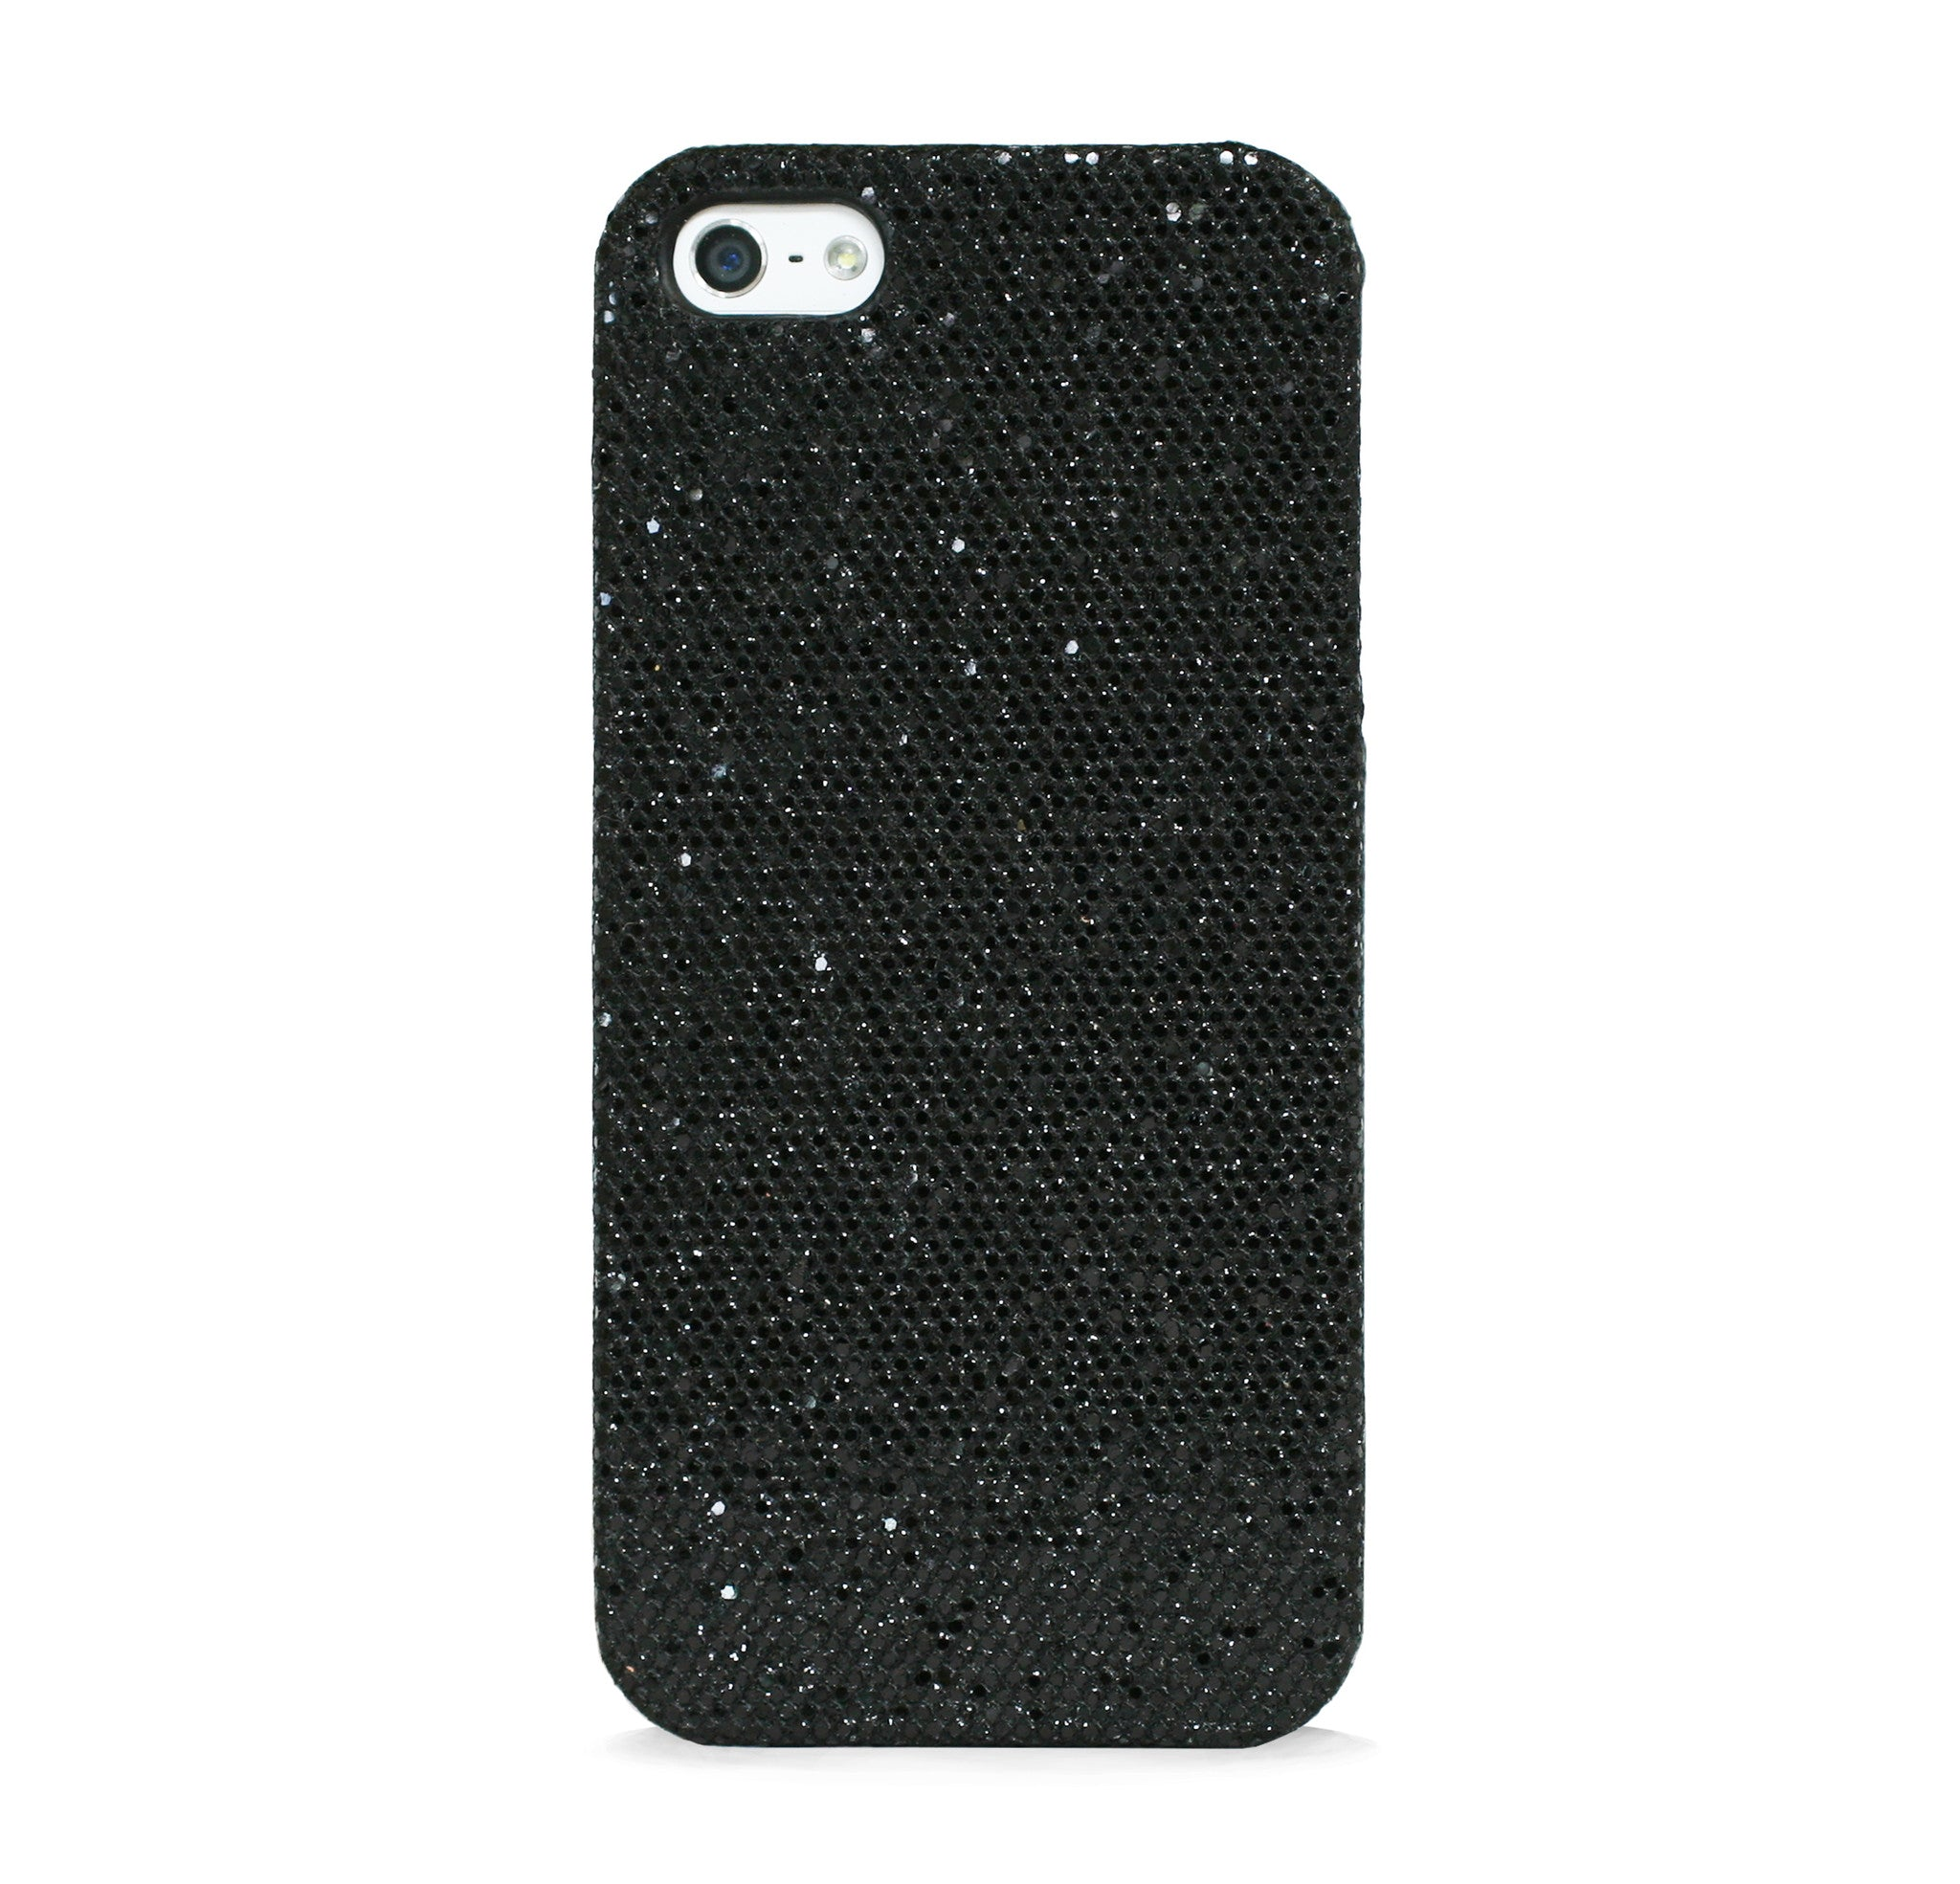 IPhone 5 and 5s GLAM GLITTER BLACK DIAMOND CASE